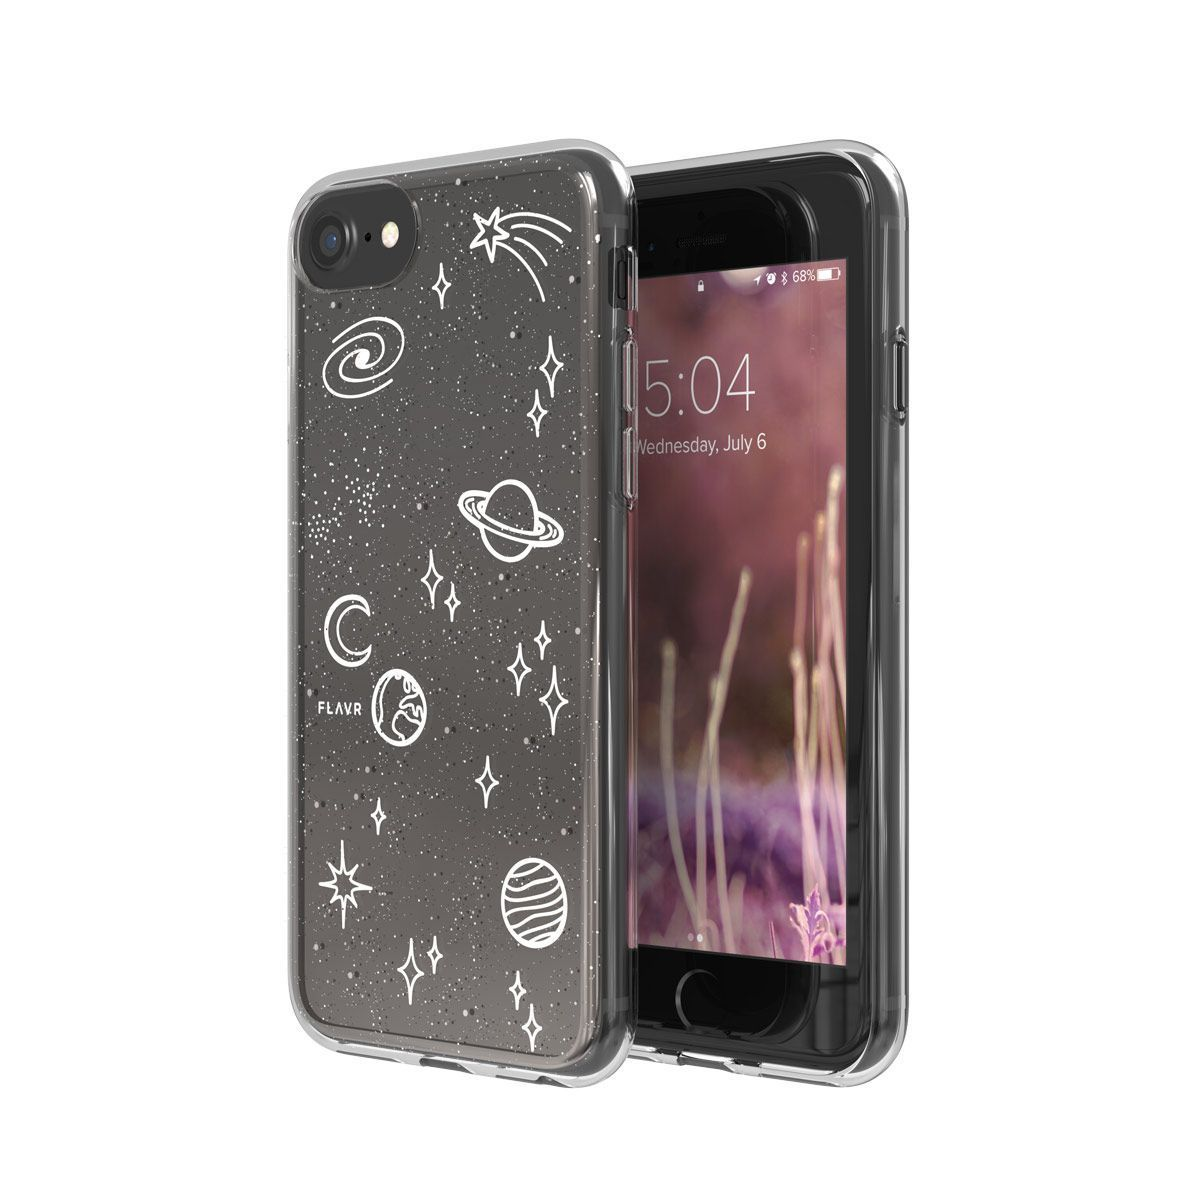 iphone 7 flavr case